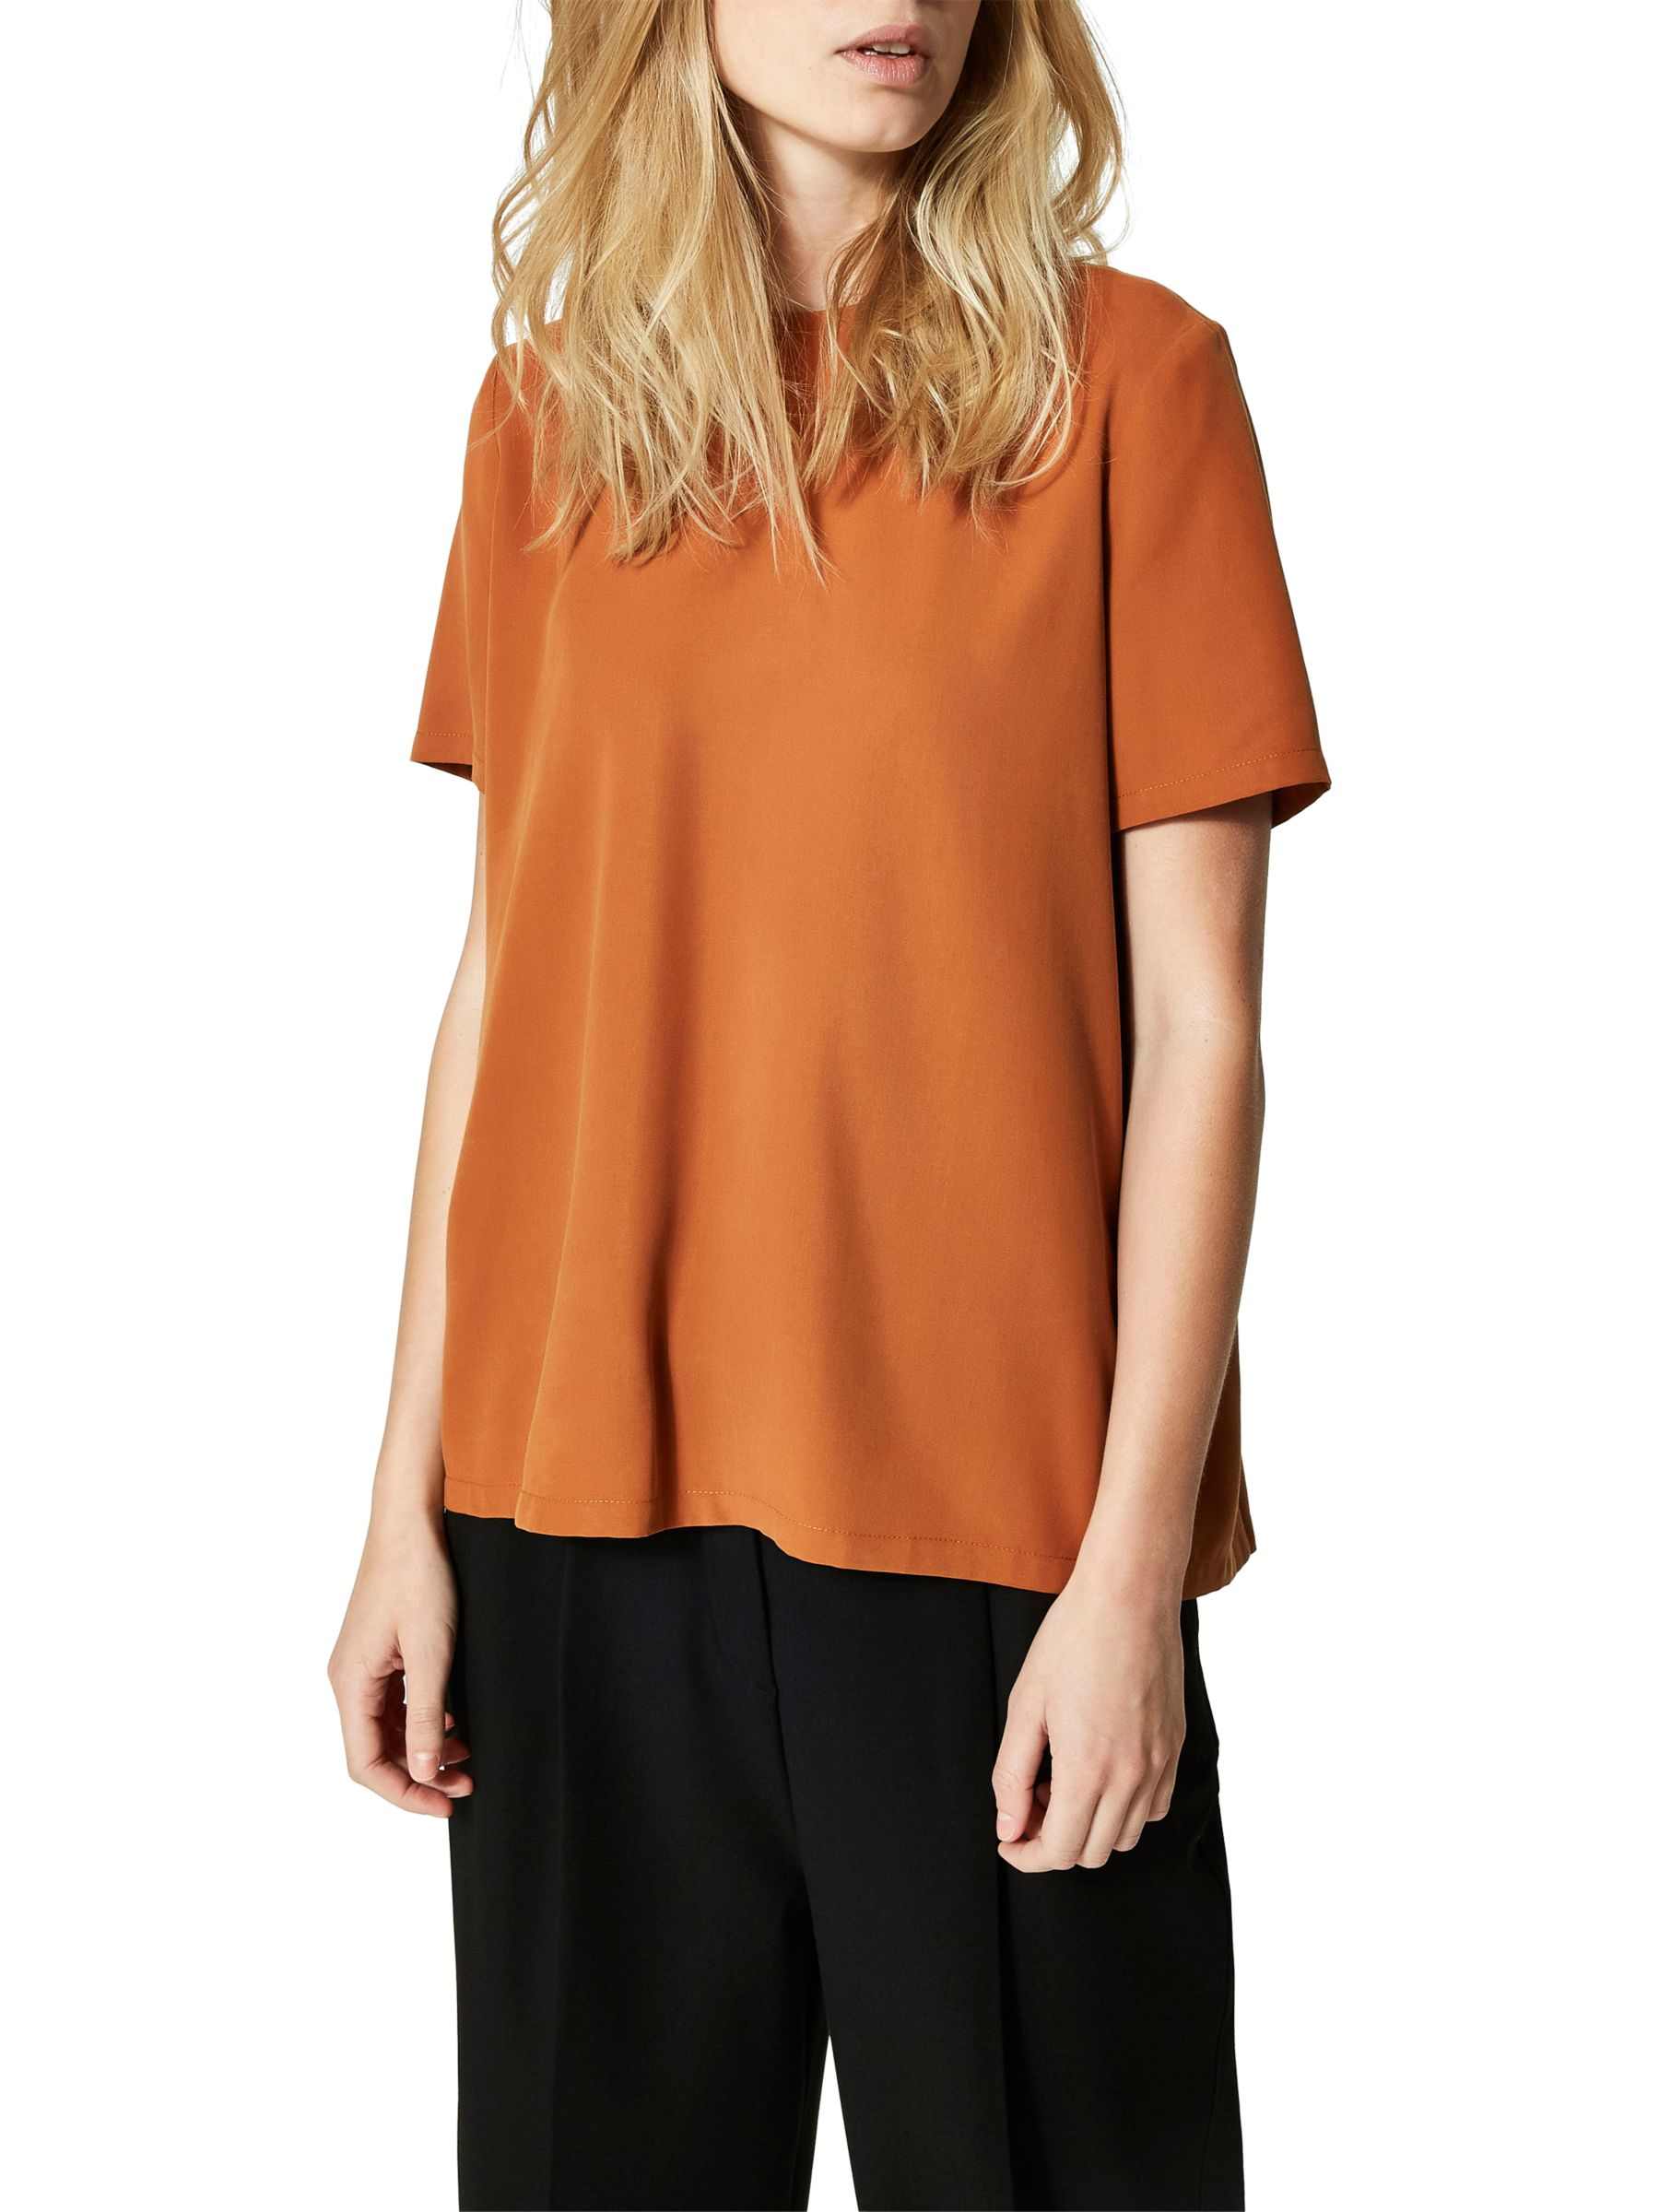 3562156bc07c2 Selected Femme Tonia Top, Glazed Ginger at John Lewis & Partners